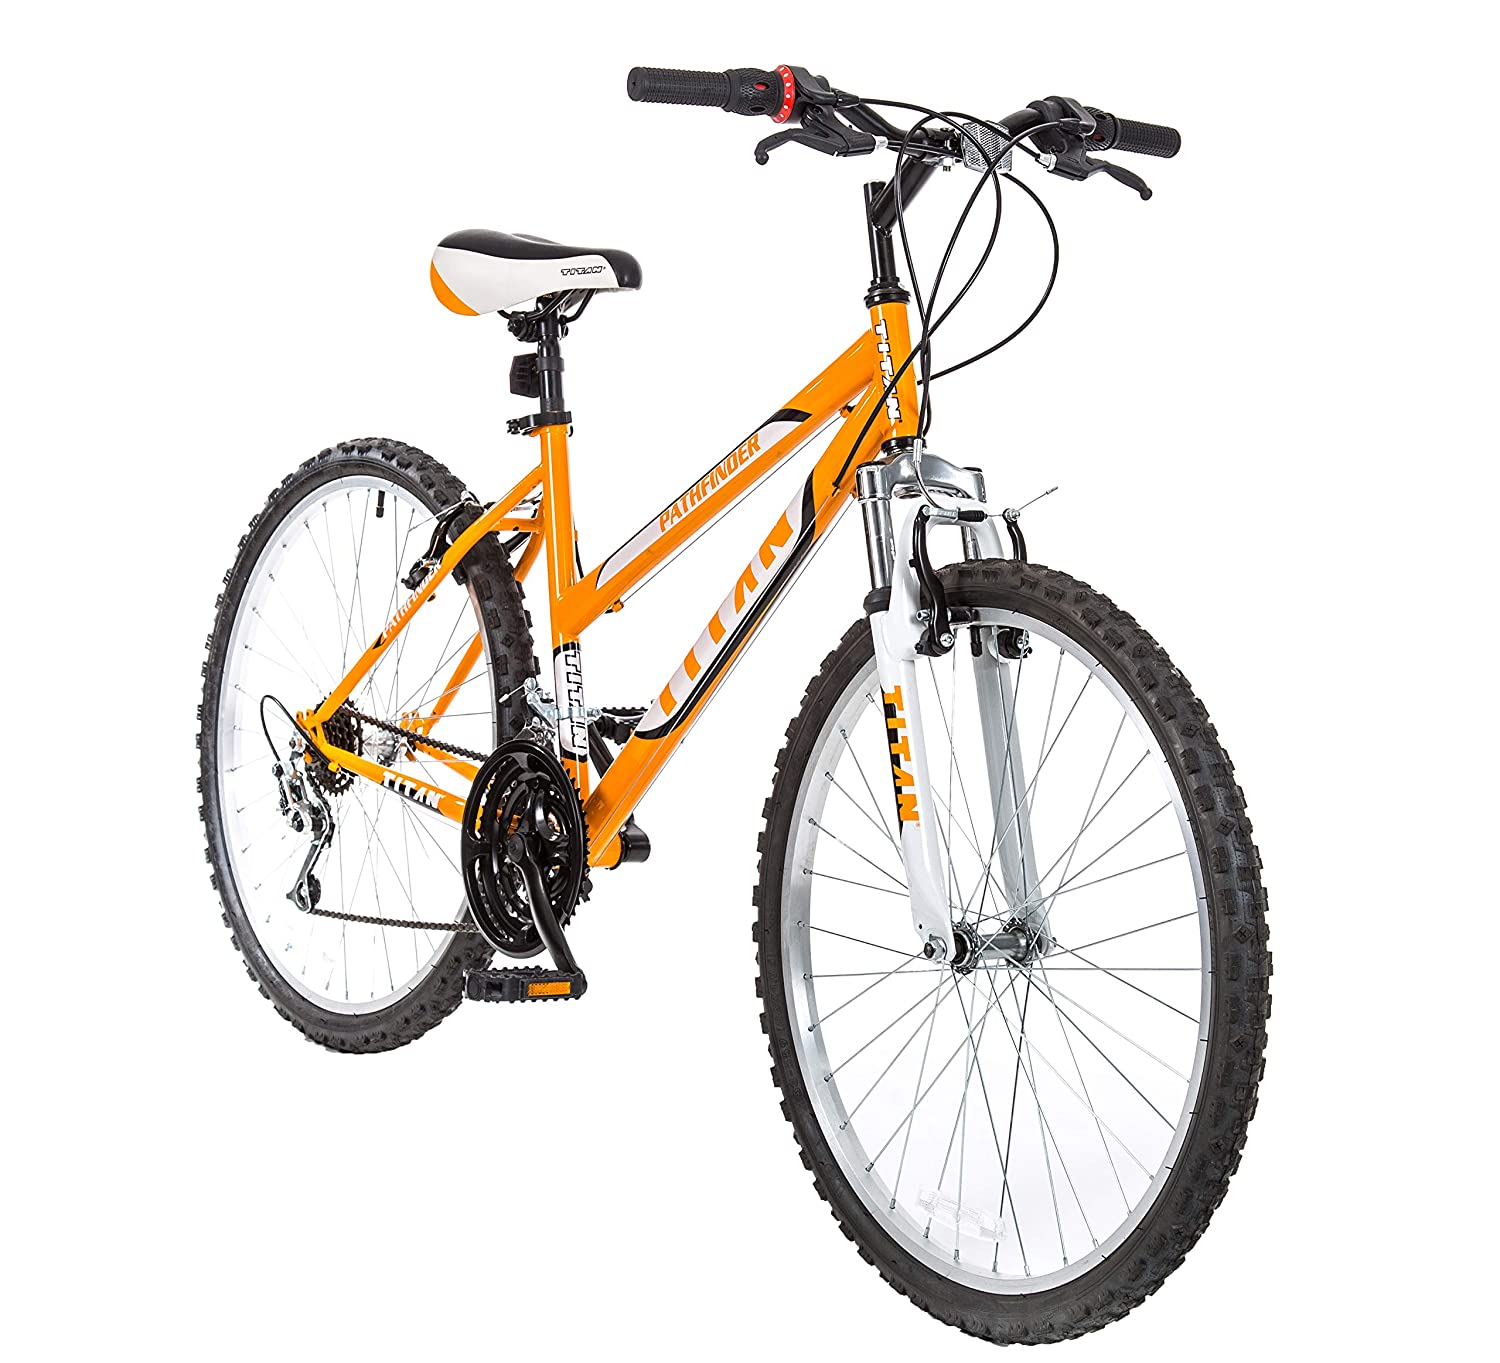 Titan Women s 18-Speed Pathfinder Front-Suspension Mountain Bike, Sunkissed Orange, 17-Inch Frame, 26-Inch Alloy Wheels